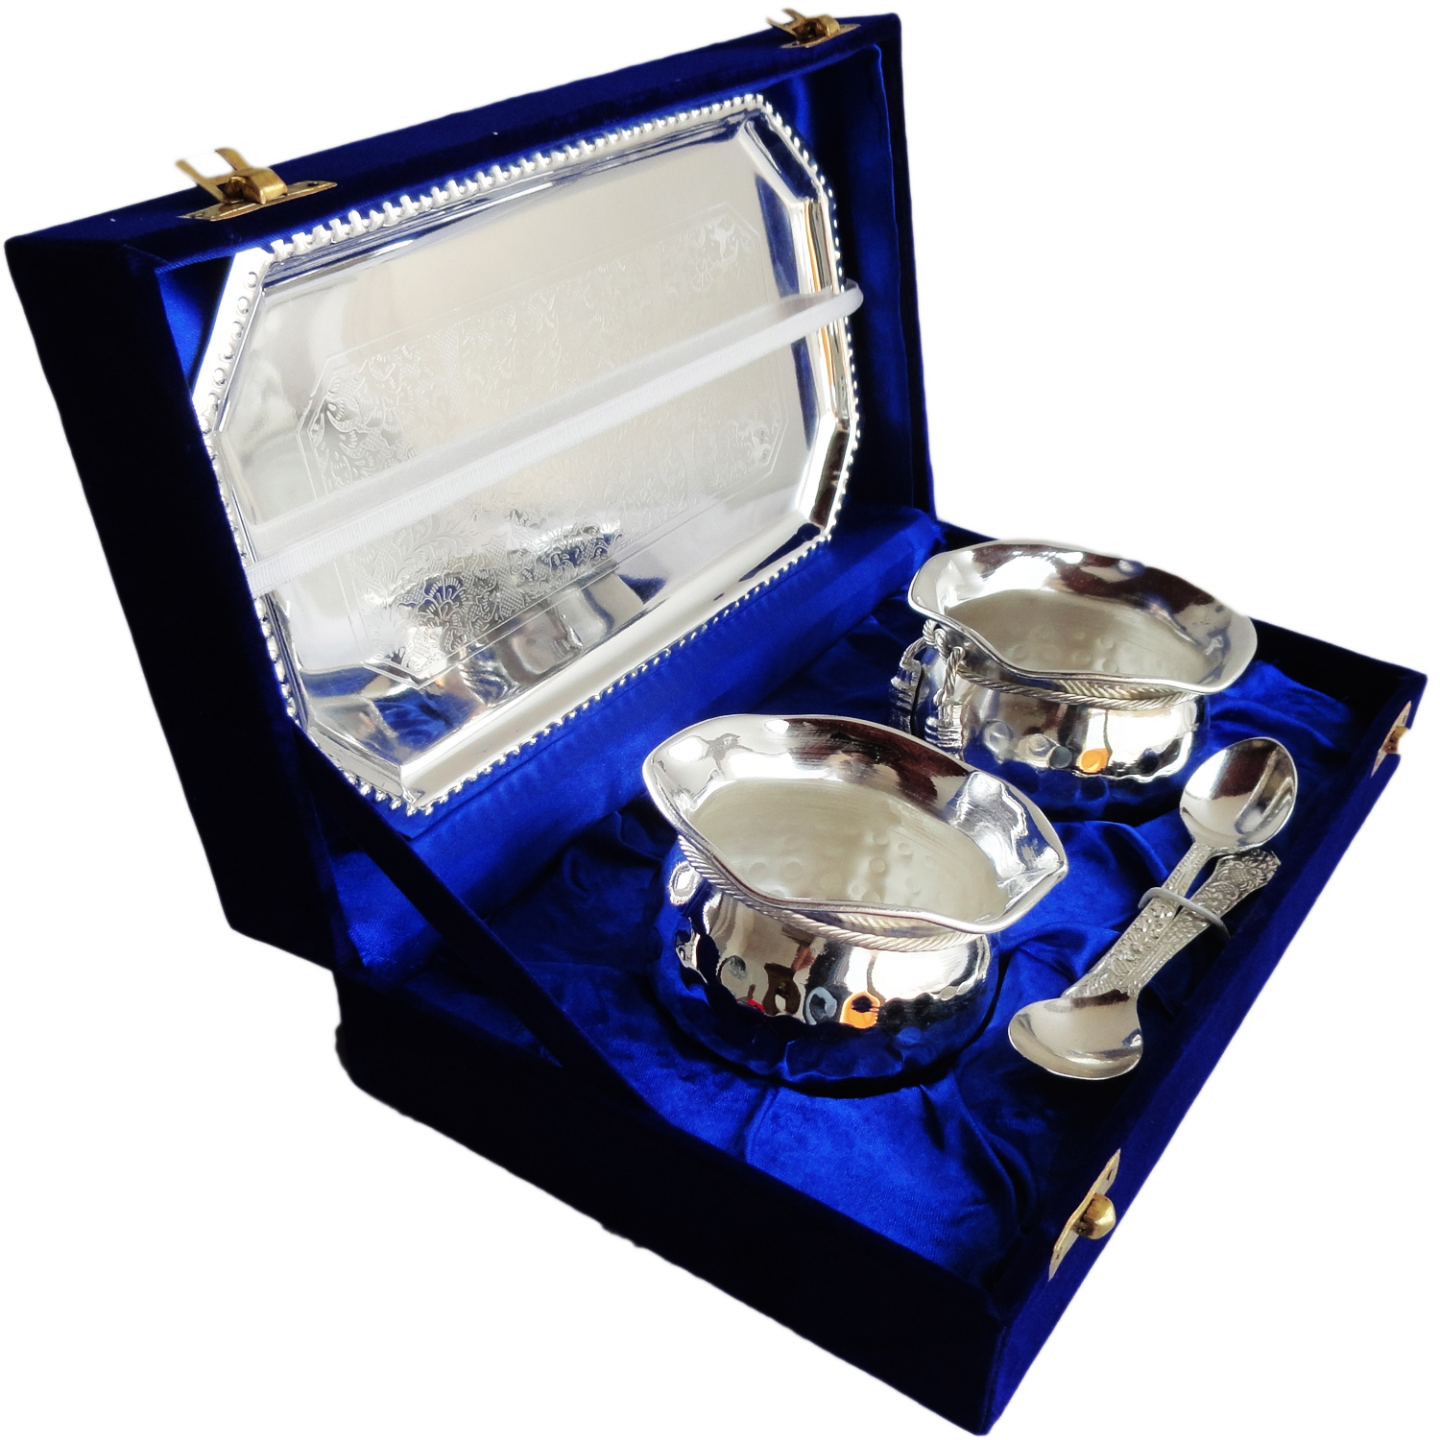 Brass Tie Bowl Set With Silver plating Packed In Velvet Box - 3.53.52.5 Inch  B014